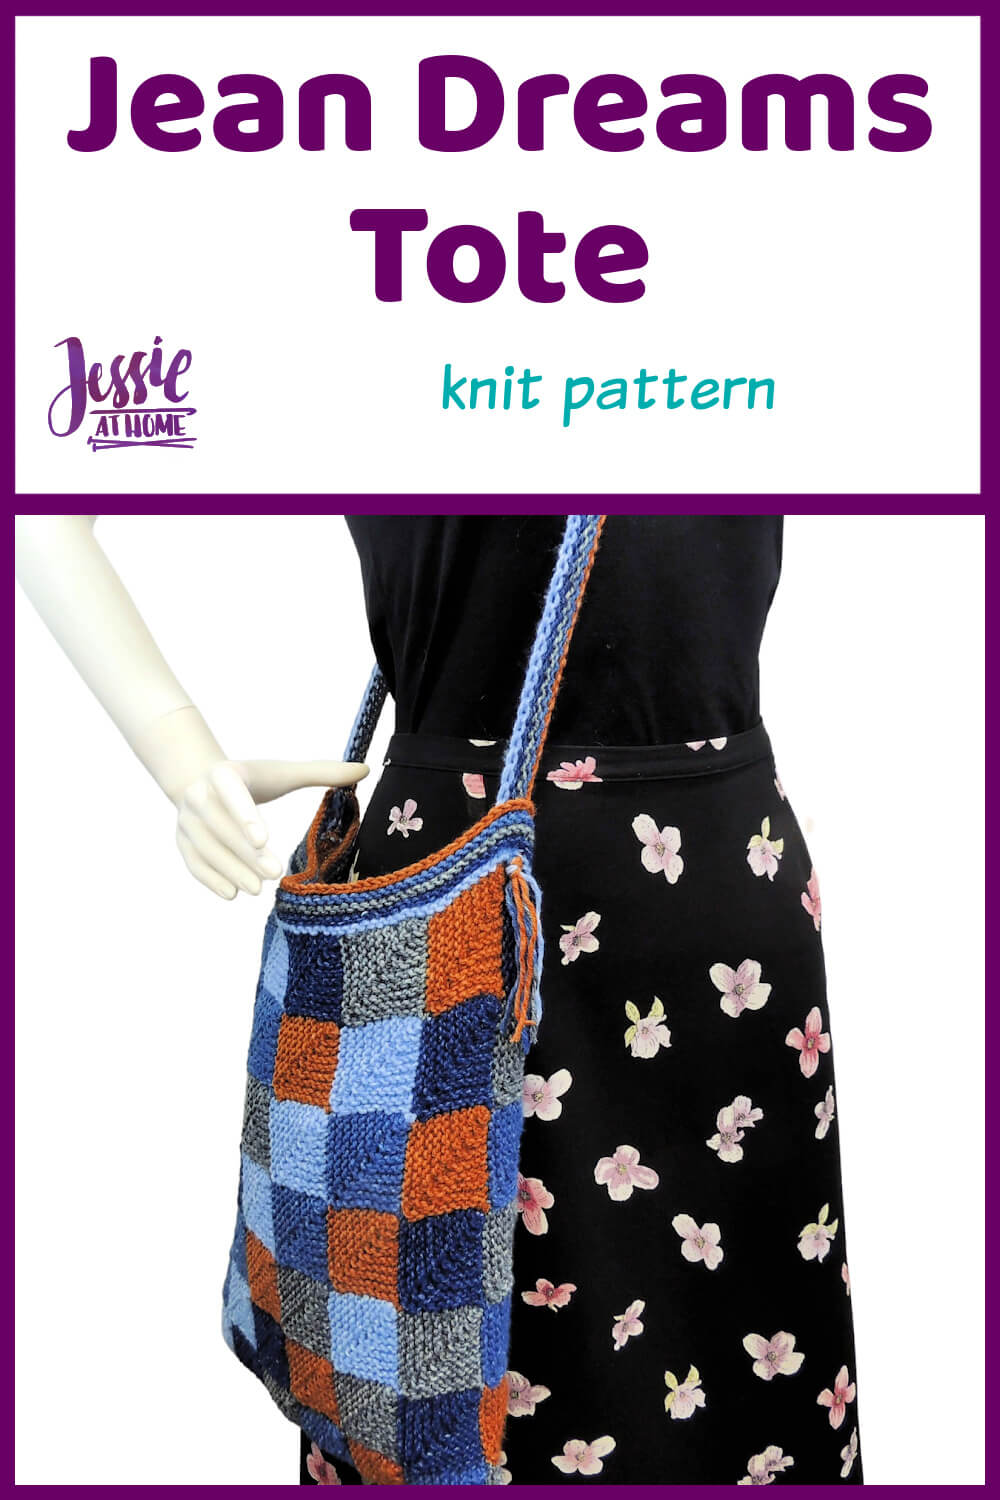 Denim Knit Pattern - Jean Dreams Tote - carry what you need in style!